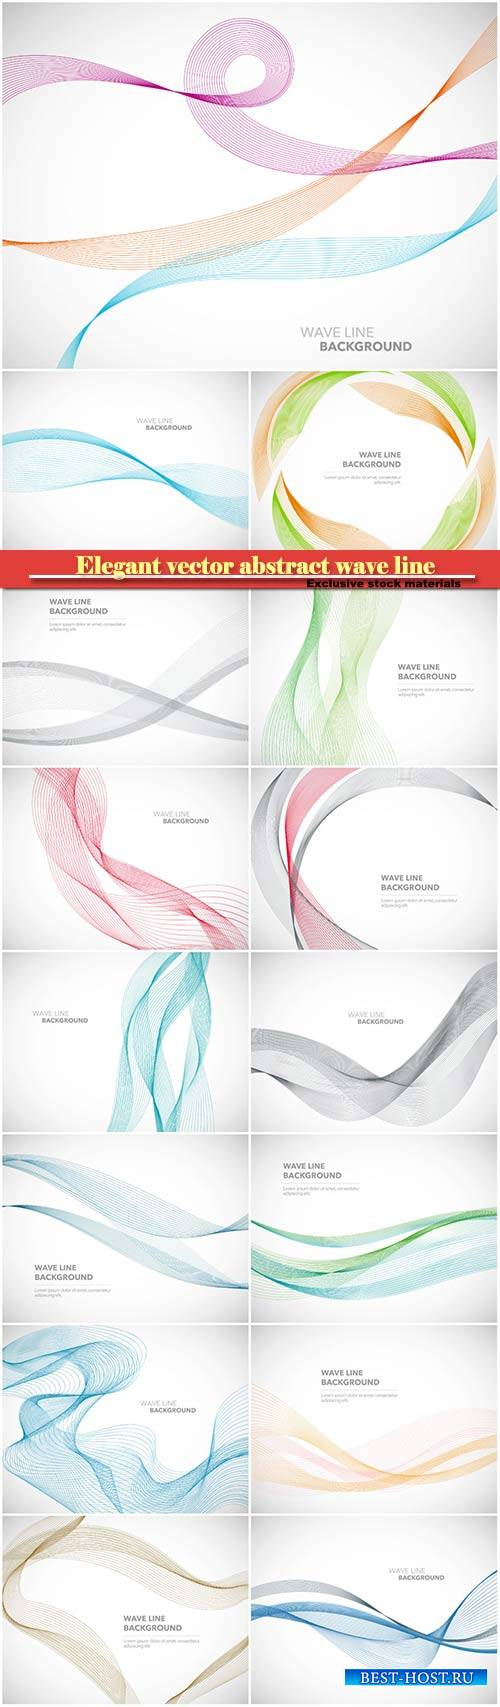 Elegant vector abstract wave line futuristic style background template